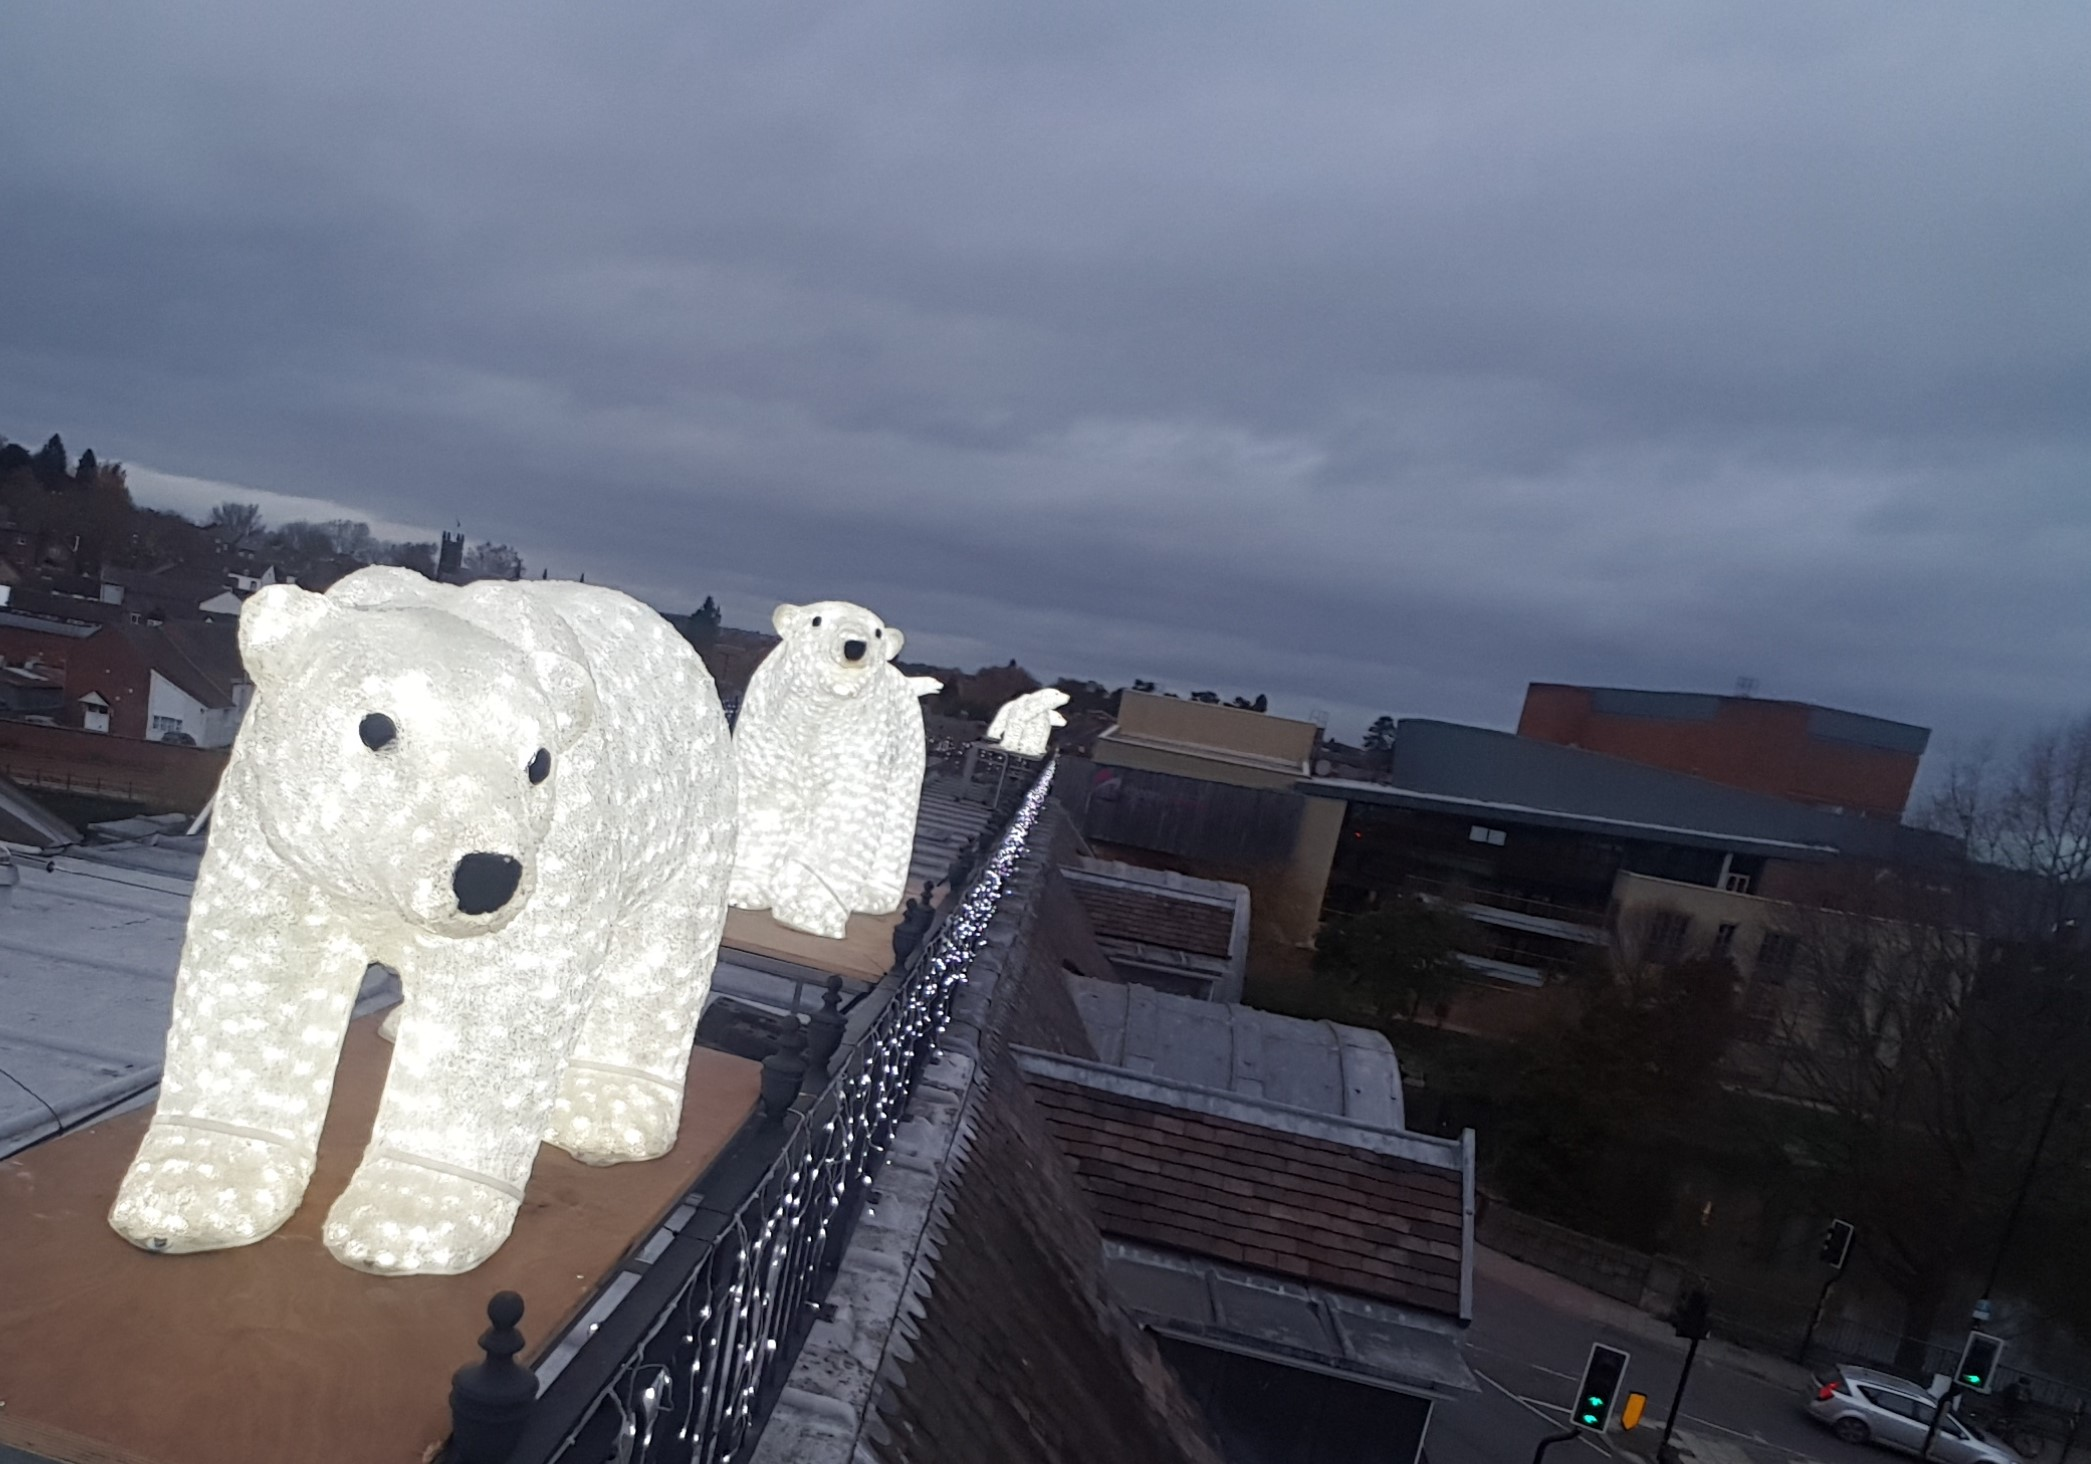 Polar bears arrive early with Christmas cheer